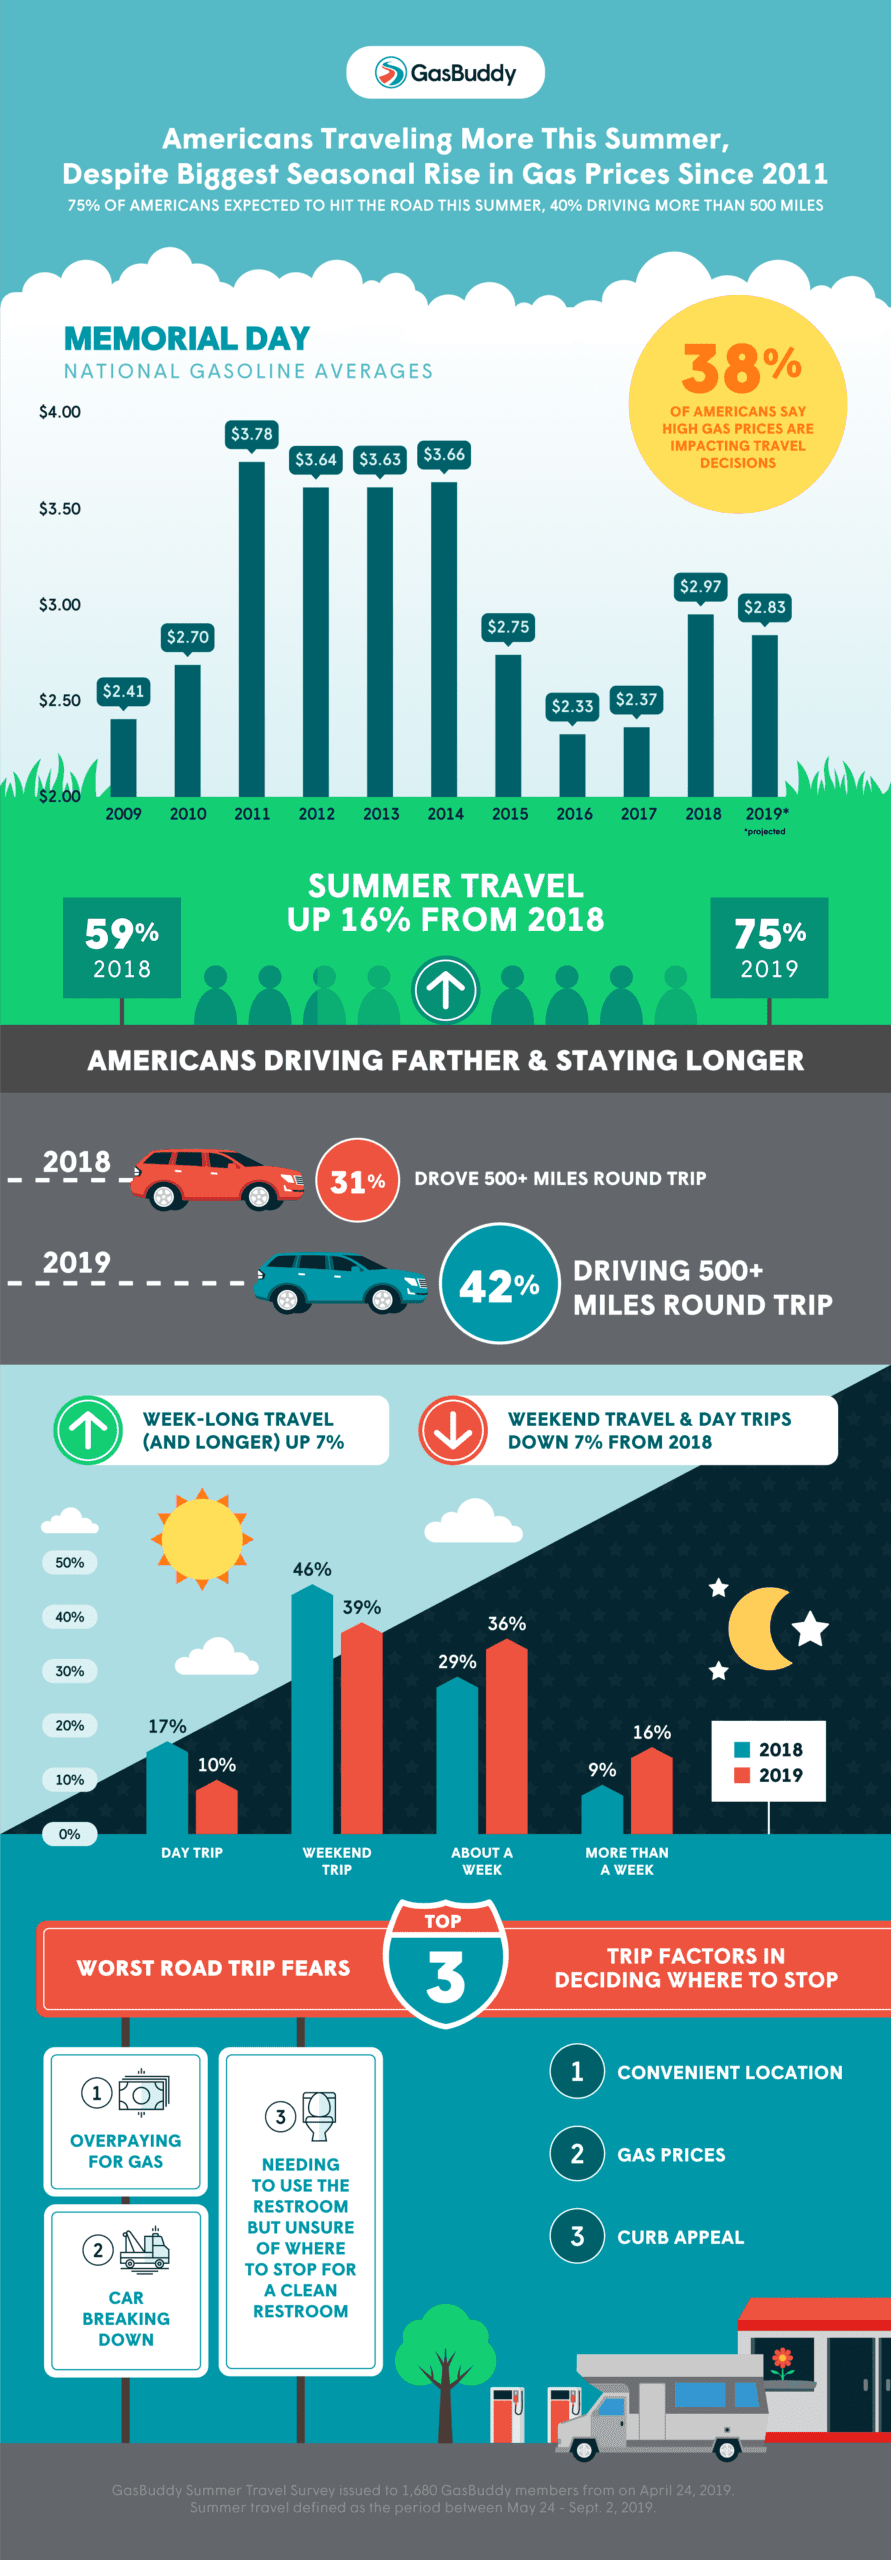 75% of Americans expected to hit the road this summer, 40% driving more than 500 miles even as average gasoline prices have surged 60c/gal since New Year's Day